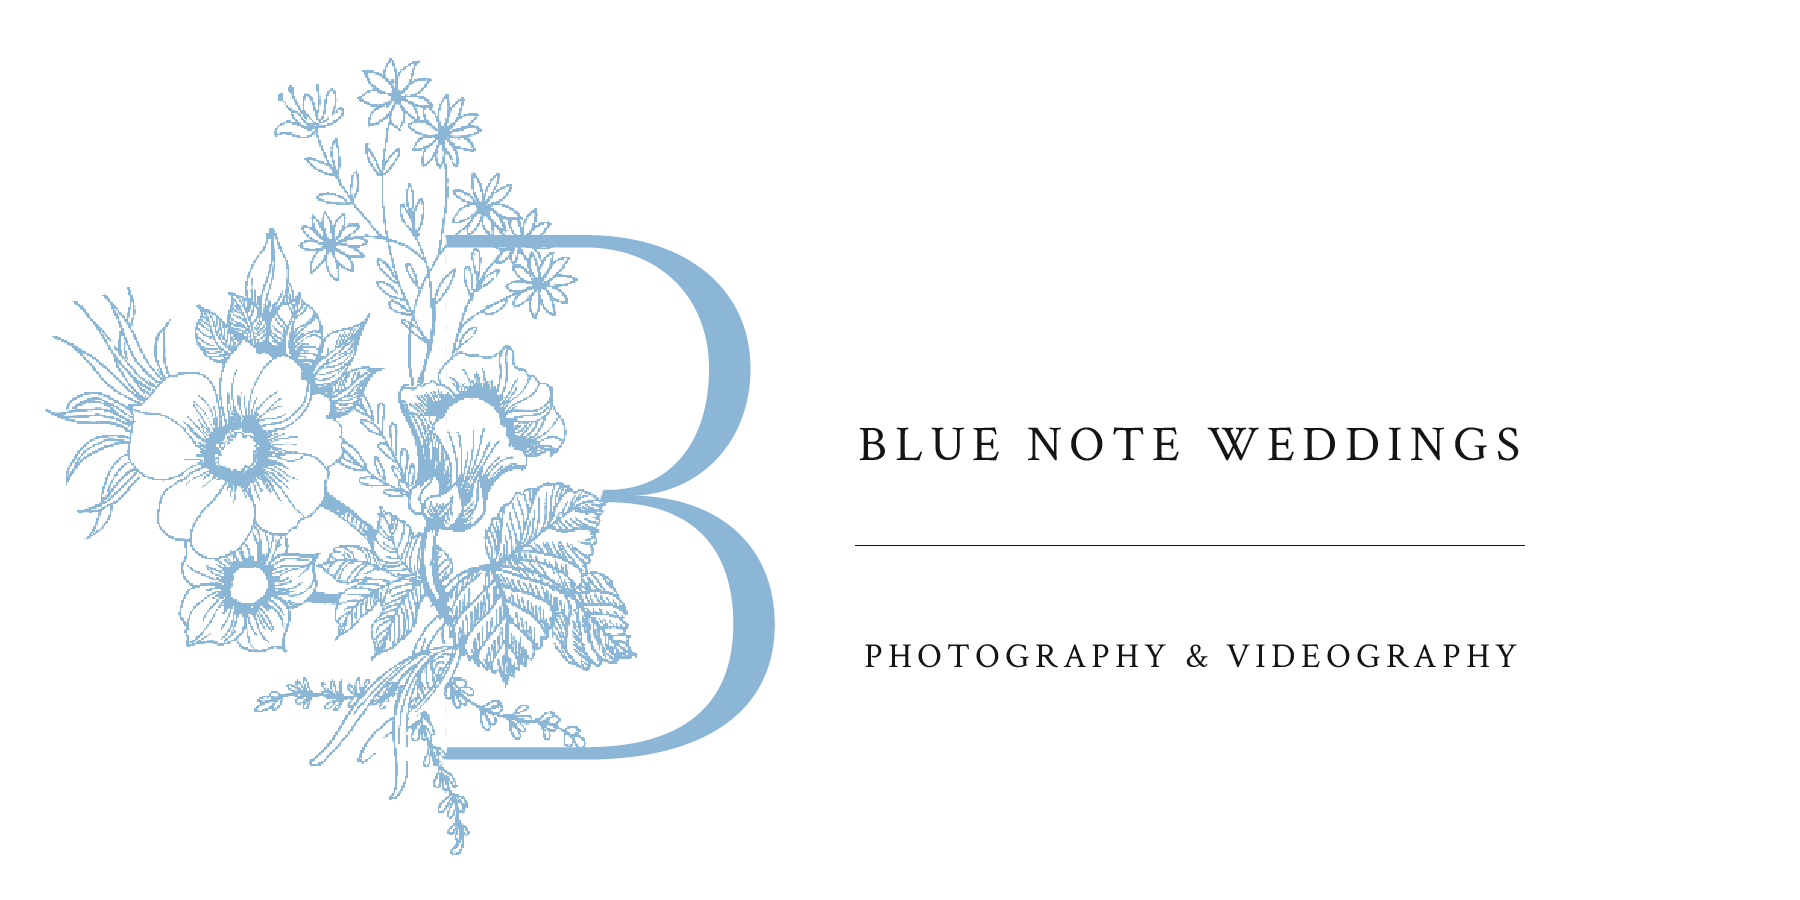 Blue Note Weddings